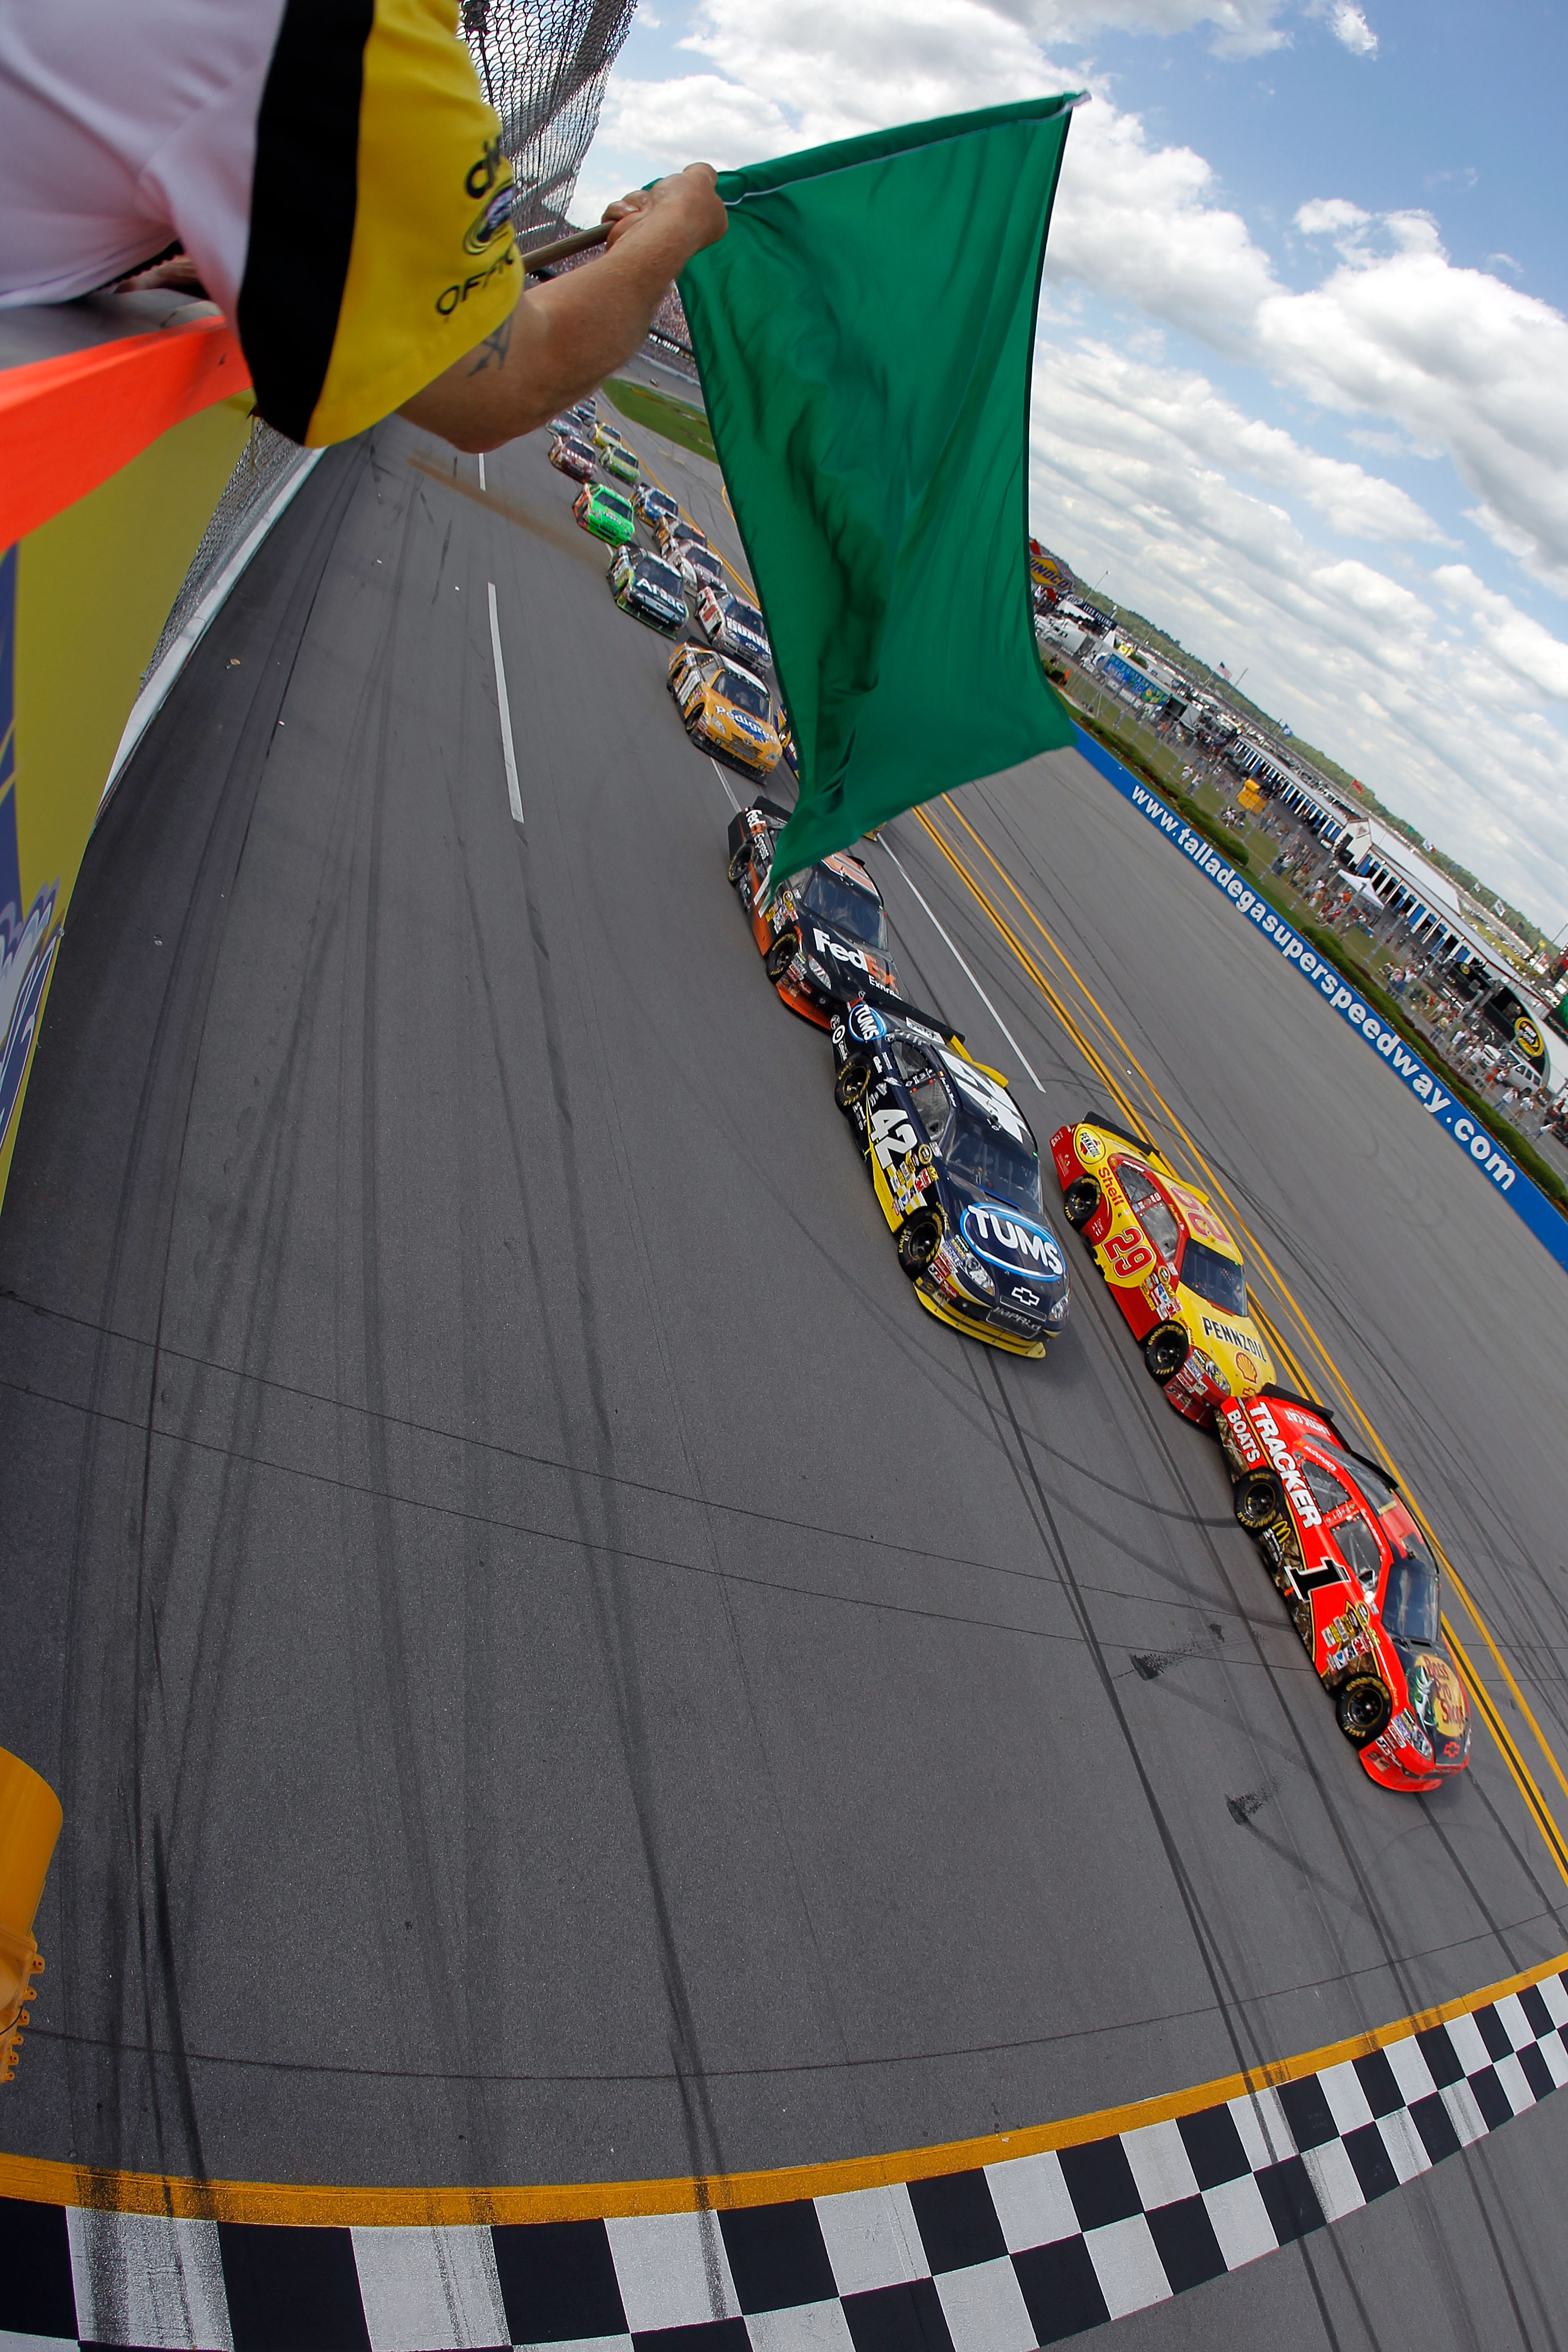 TALLADEGA, AL - APRIL 25:  Jamie McMurray, driver of the #1 Bass Pro Shops/Tracker Boats Chevrolet, leads the field to a restart in the NASCAR Sprint Cup Series Aaron's 499 at Talladega Superspeedway on April 25, 2010 in Talladega, Alabama.  (Photo by Tod